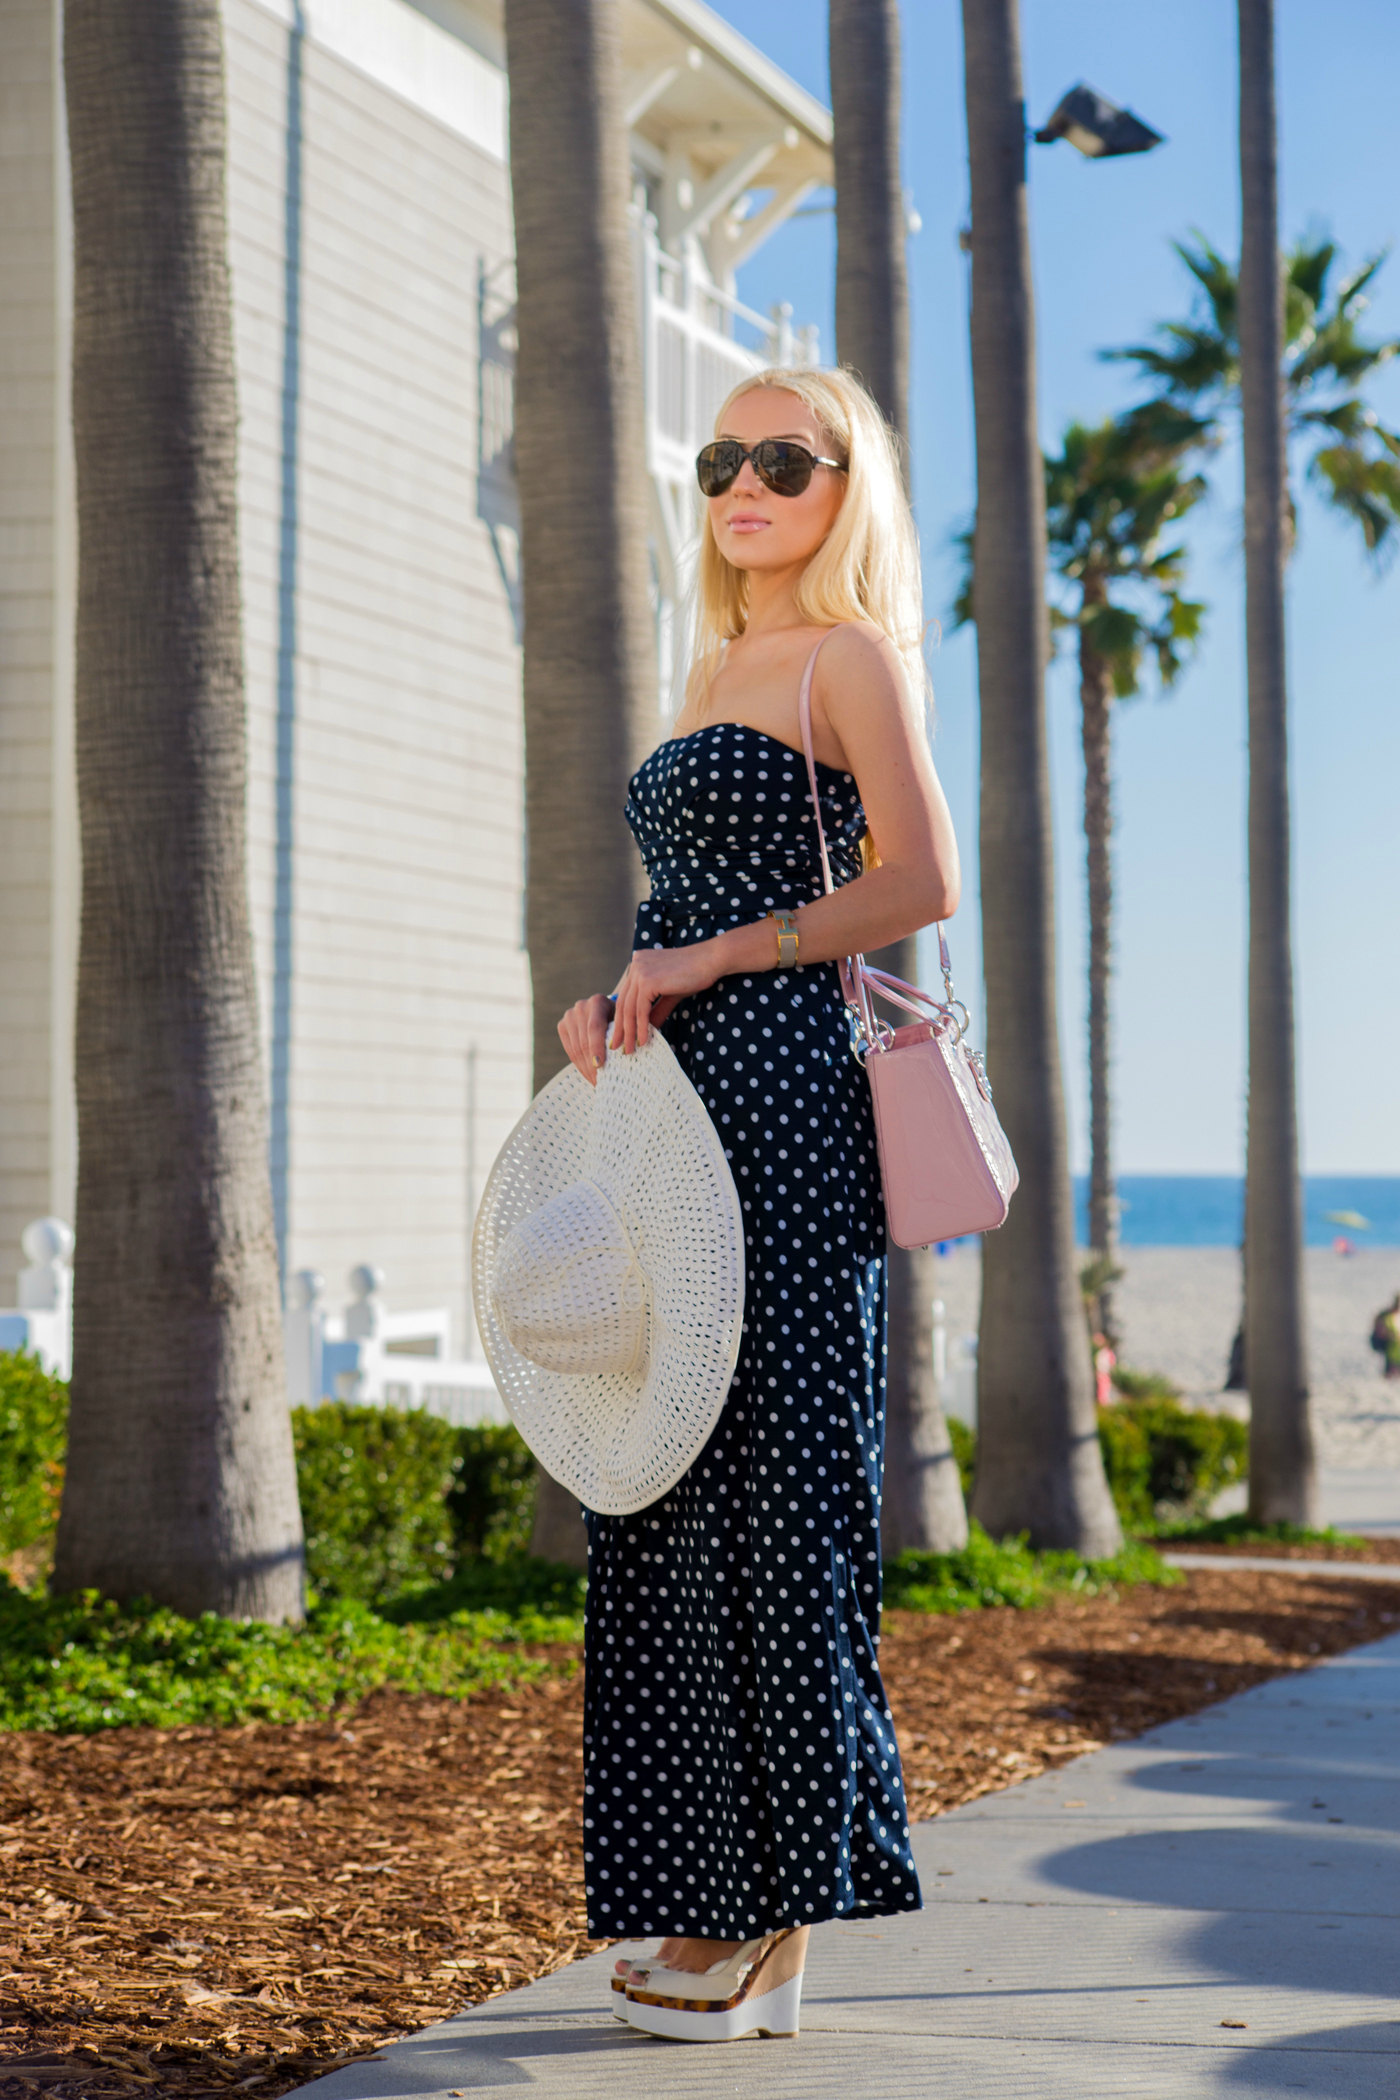 lady dior bag,brunch outfit 2014,coast outfit idea,gucci wedge sandals